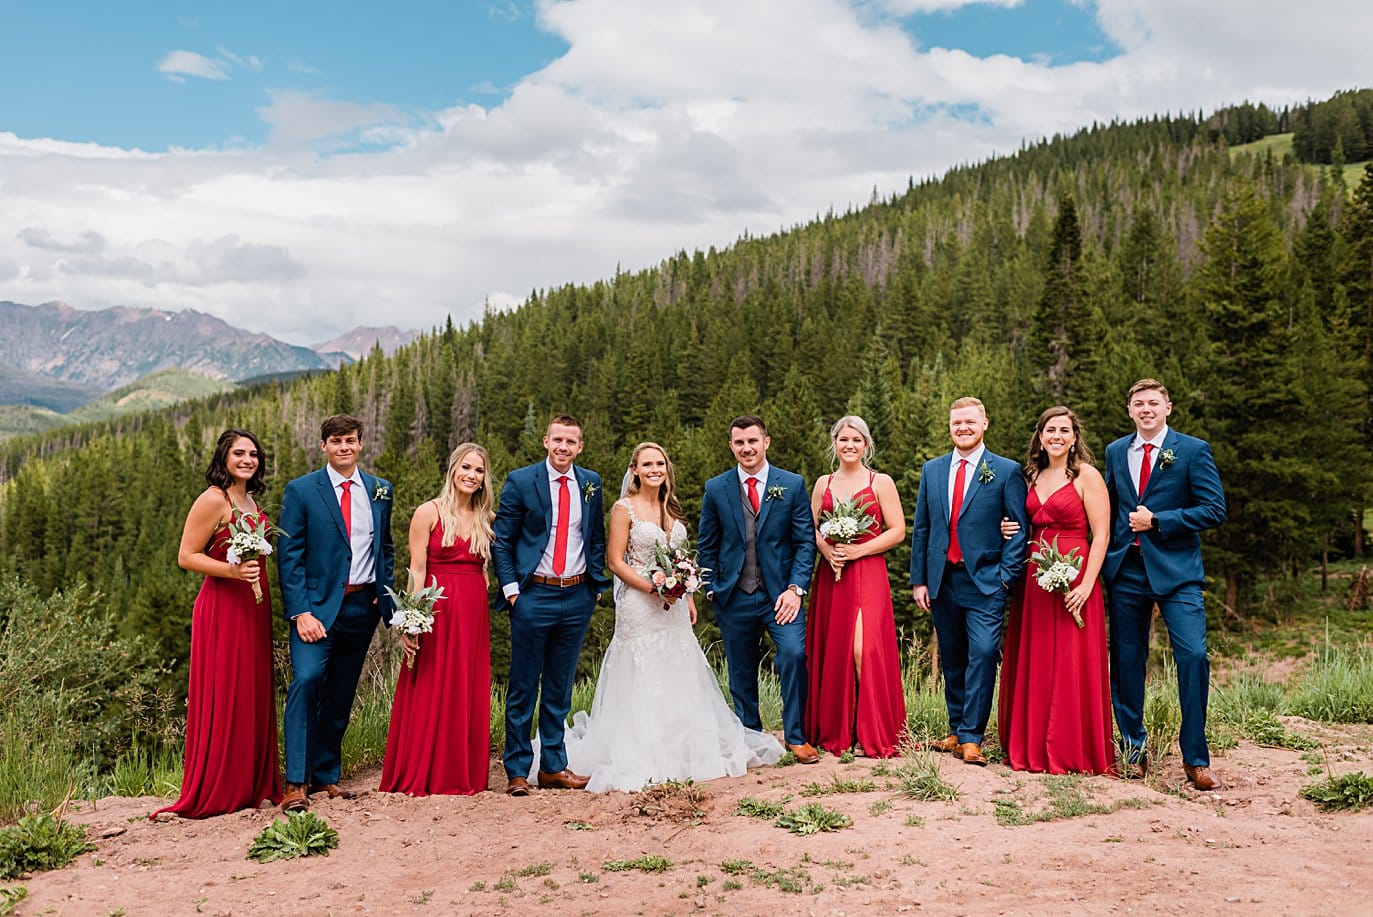 bridal party in burgundy and navy at top of vail mountain at Vail Manor Lodge wedding by Breckenridge wedding photographer Jennie Crate